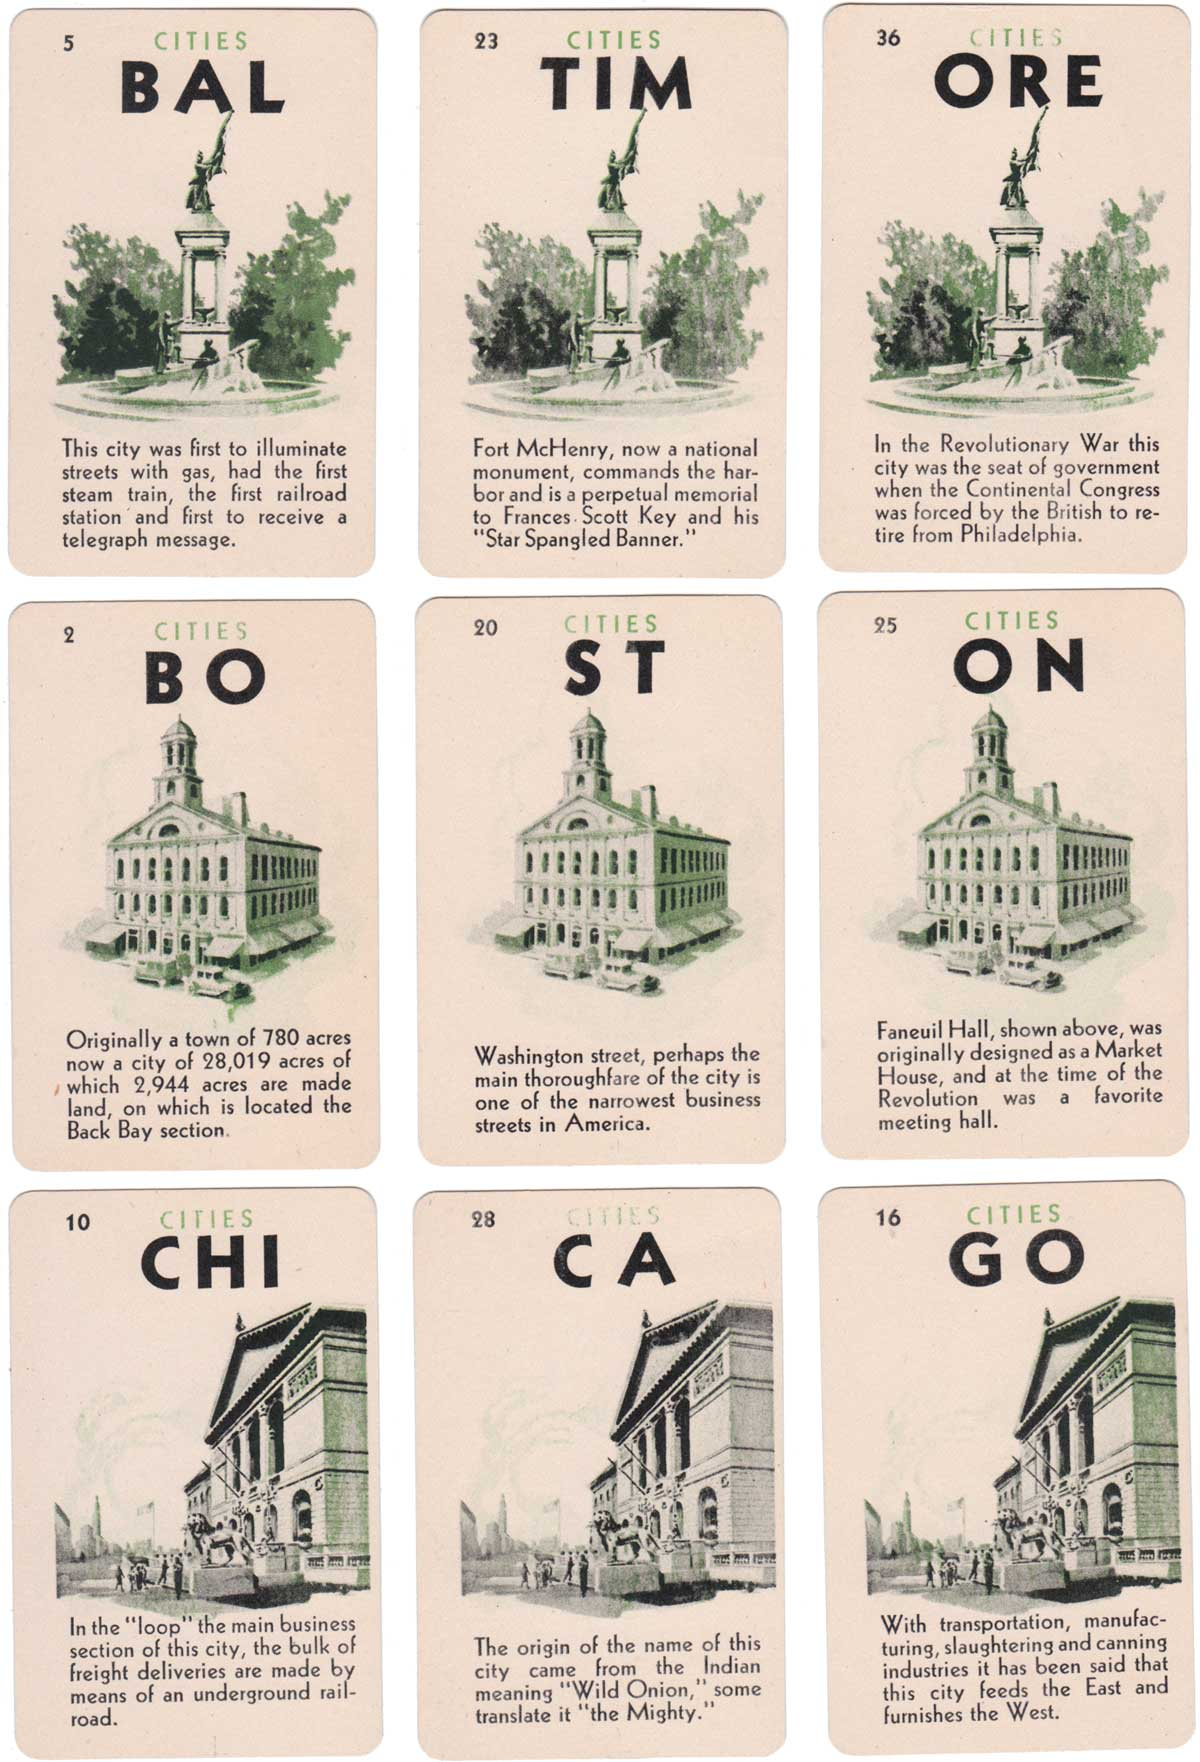 Game of Cities card game published by Fairchild Co, 1945